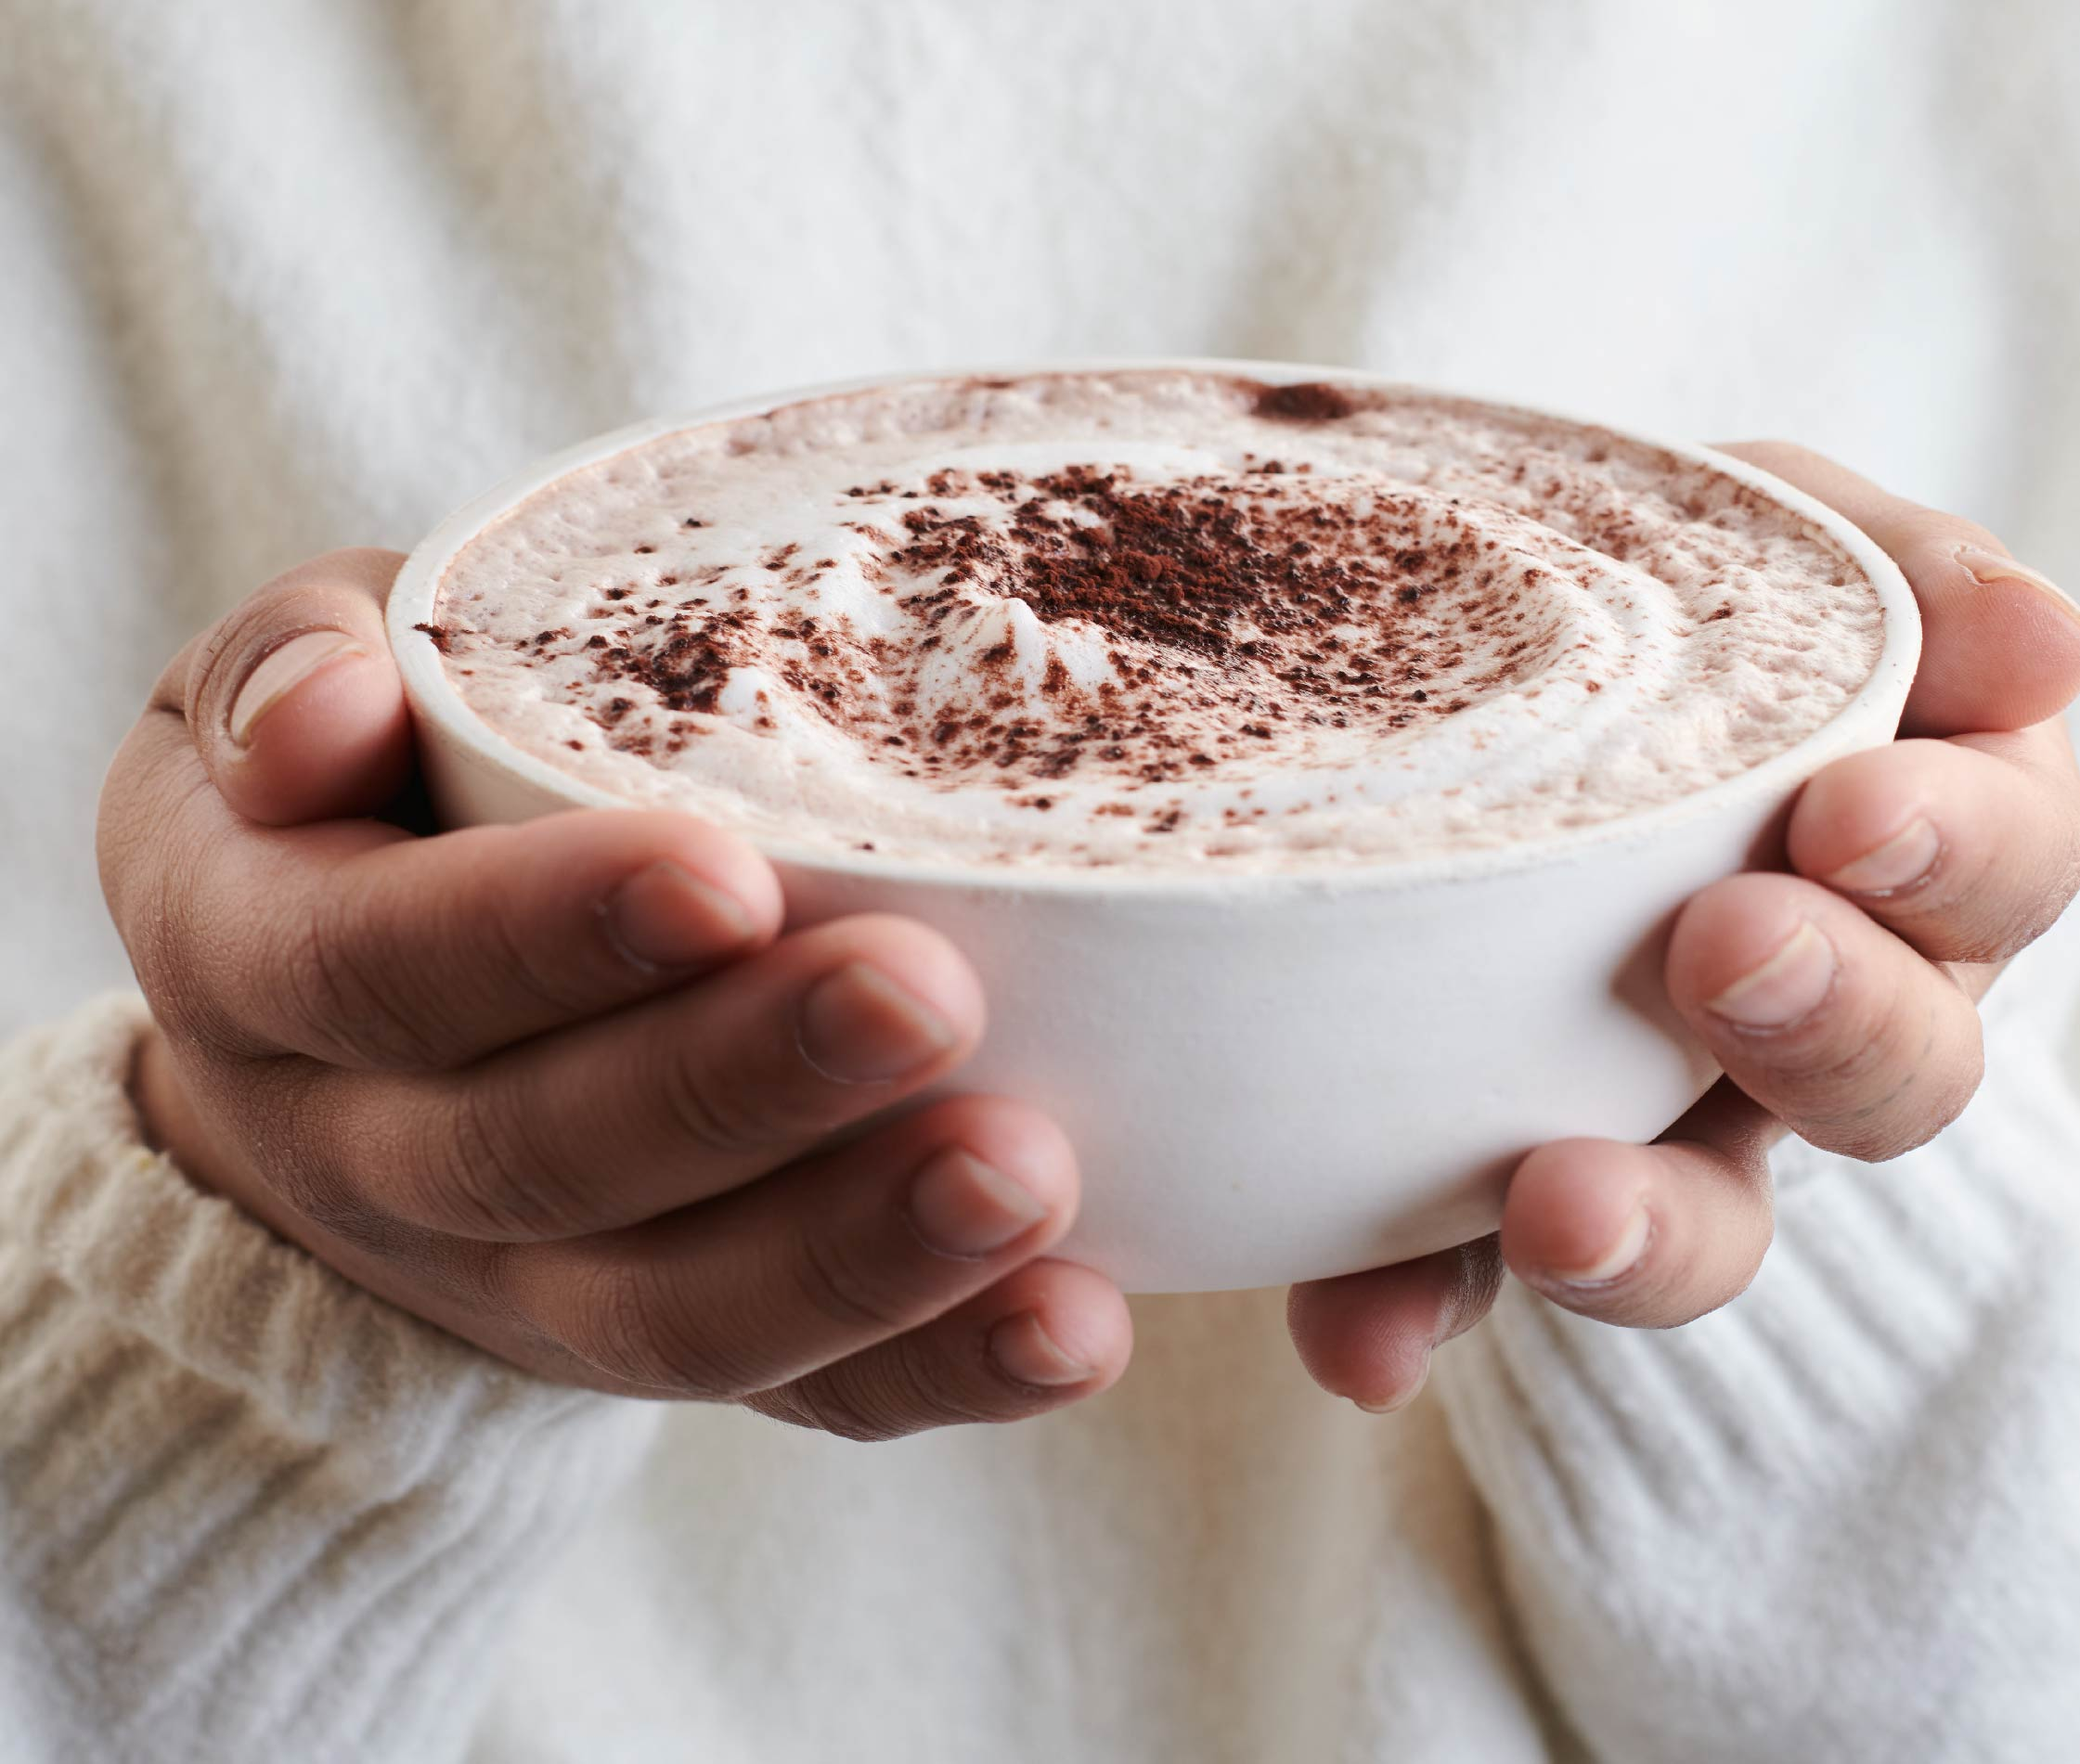 Food Photography with hands holding hot chocolate for Three Trees Almond Milk